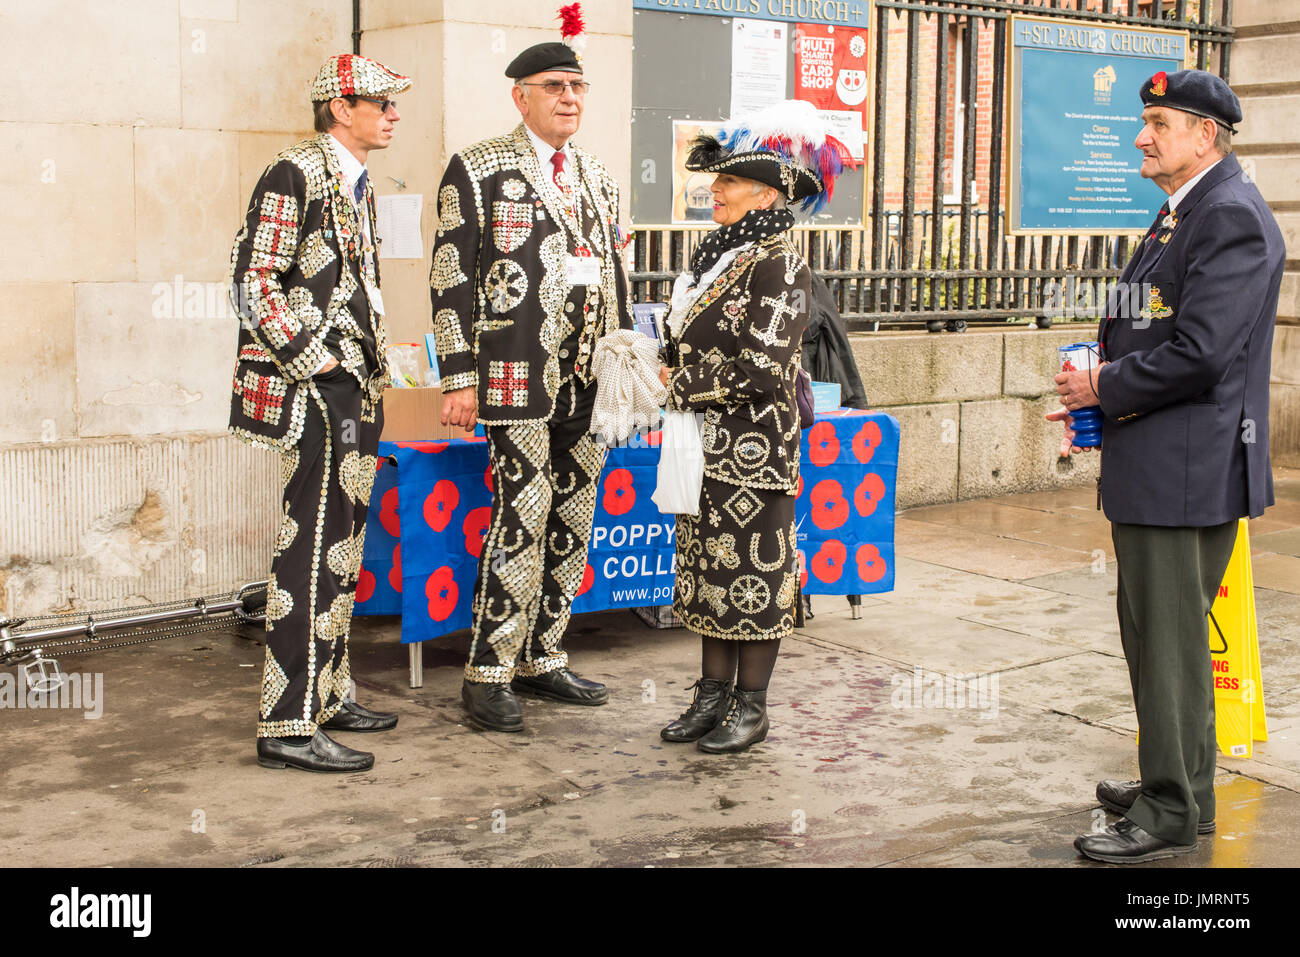 Pearly Kings and a Pearly Queen helping to raise money for the poppy appeal with an ex-serviceman in his beret and Stock Photo